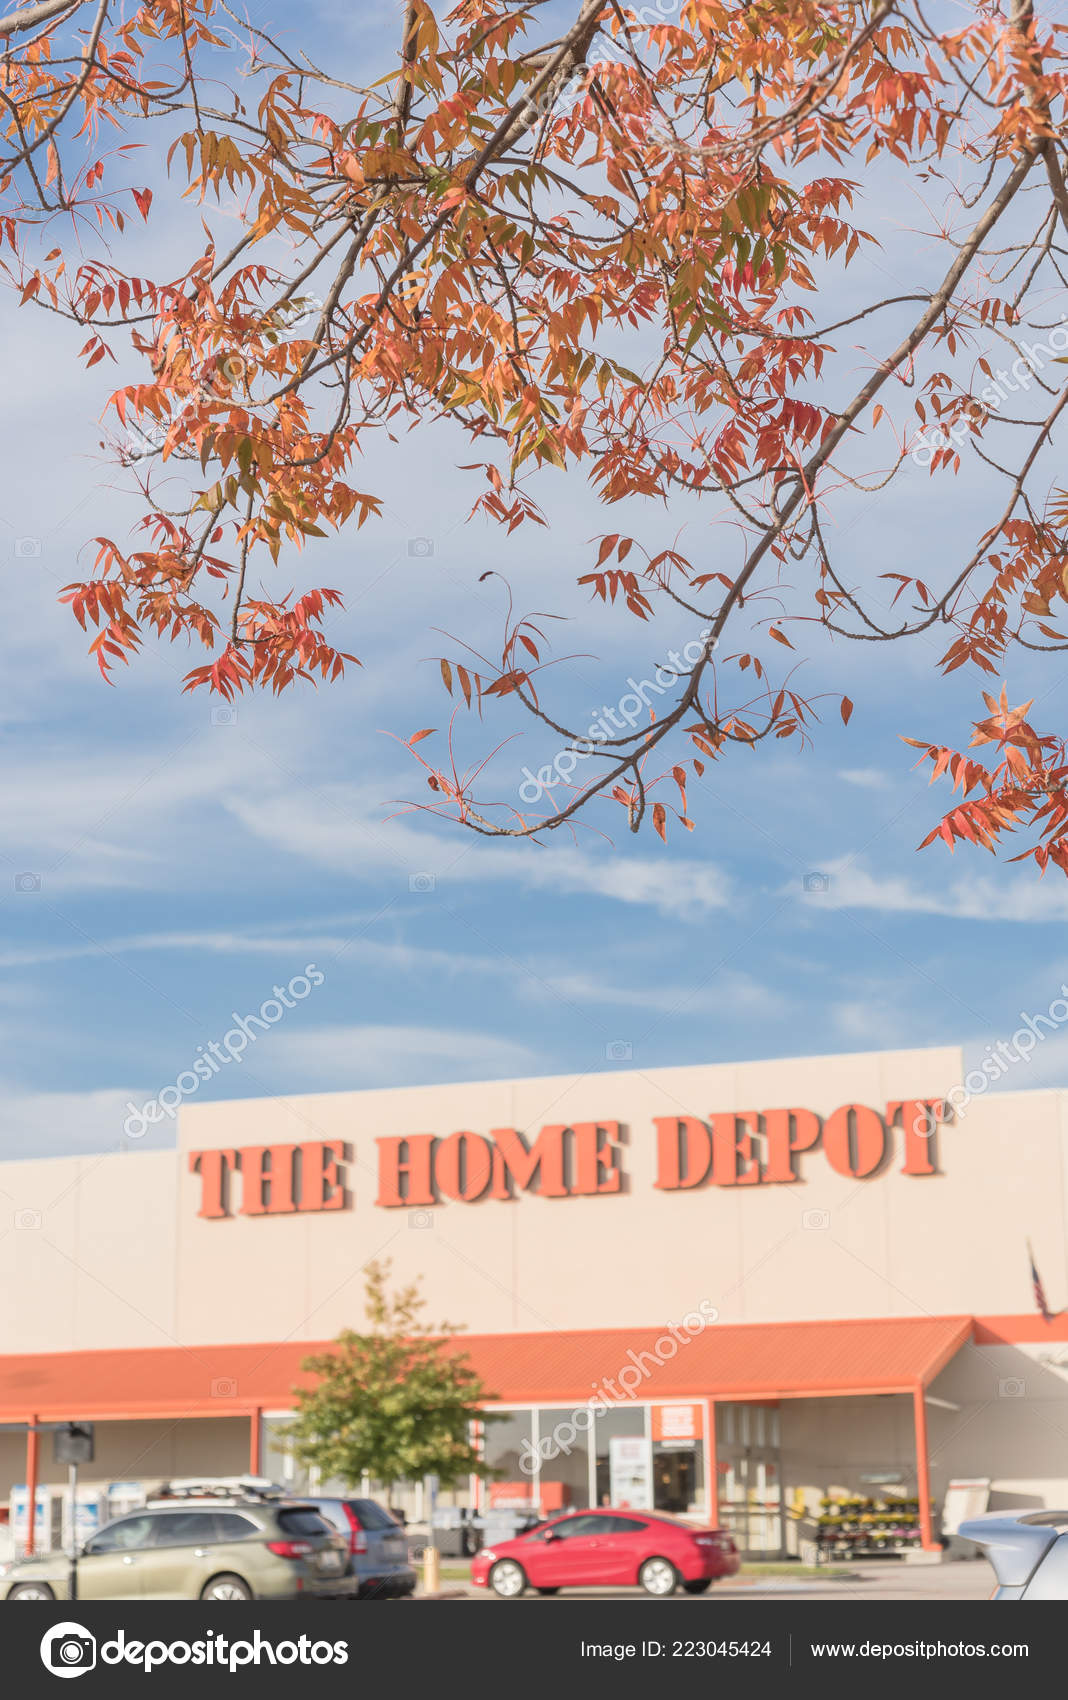 Irving Oct 2018 Home Depot Exterior Storefront Autumn Leaves Color